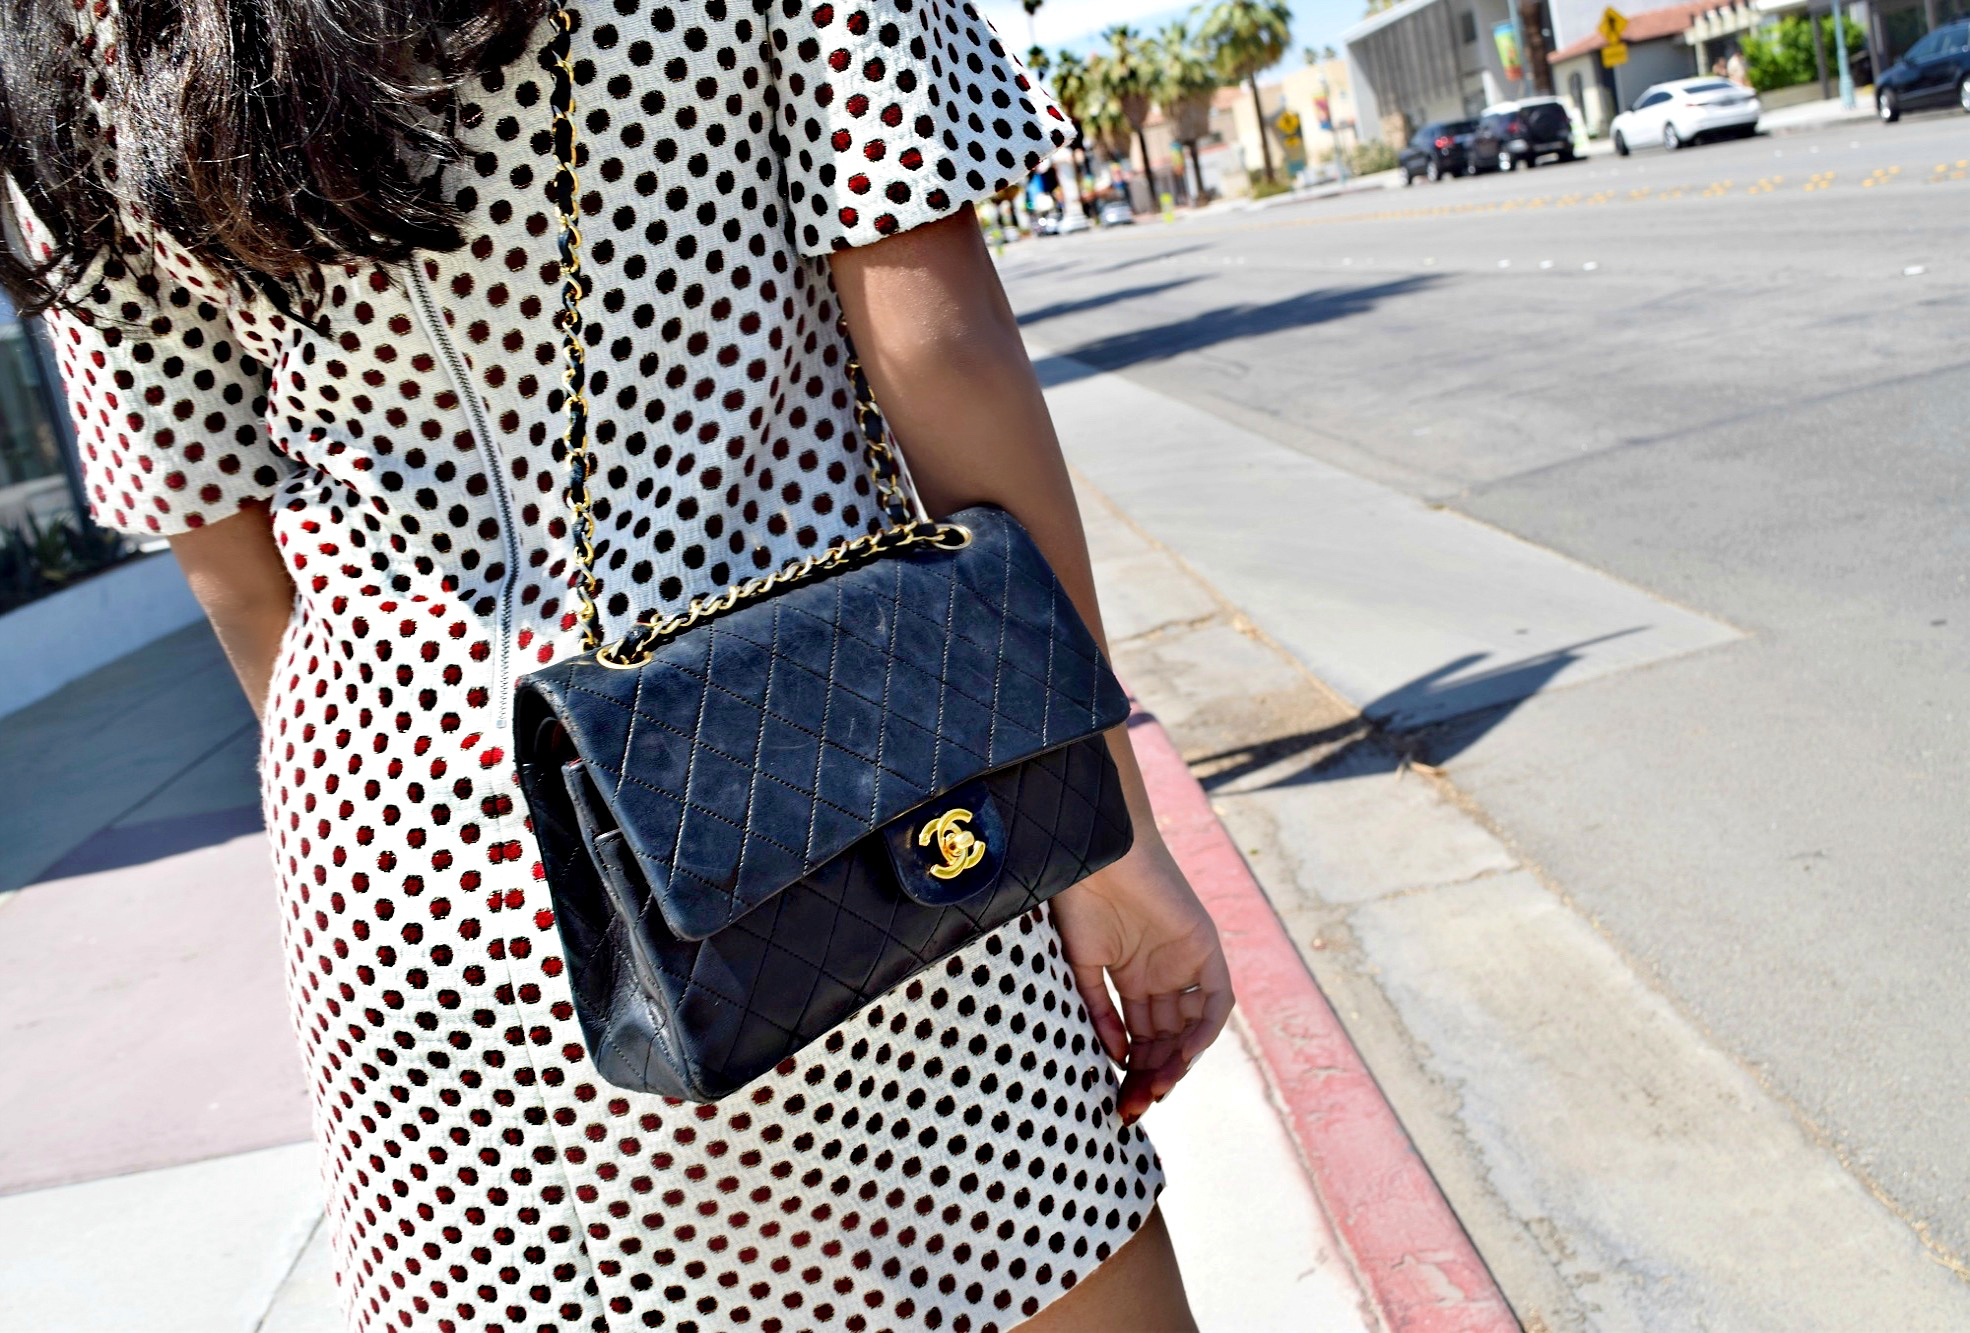 Vintage Chanel Flap Bag Details Palm Springs: To Style, With Love